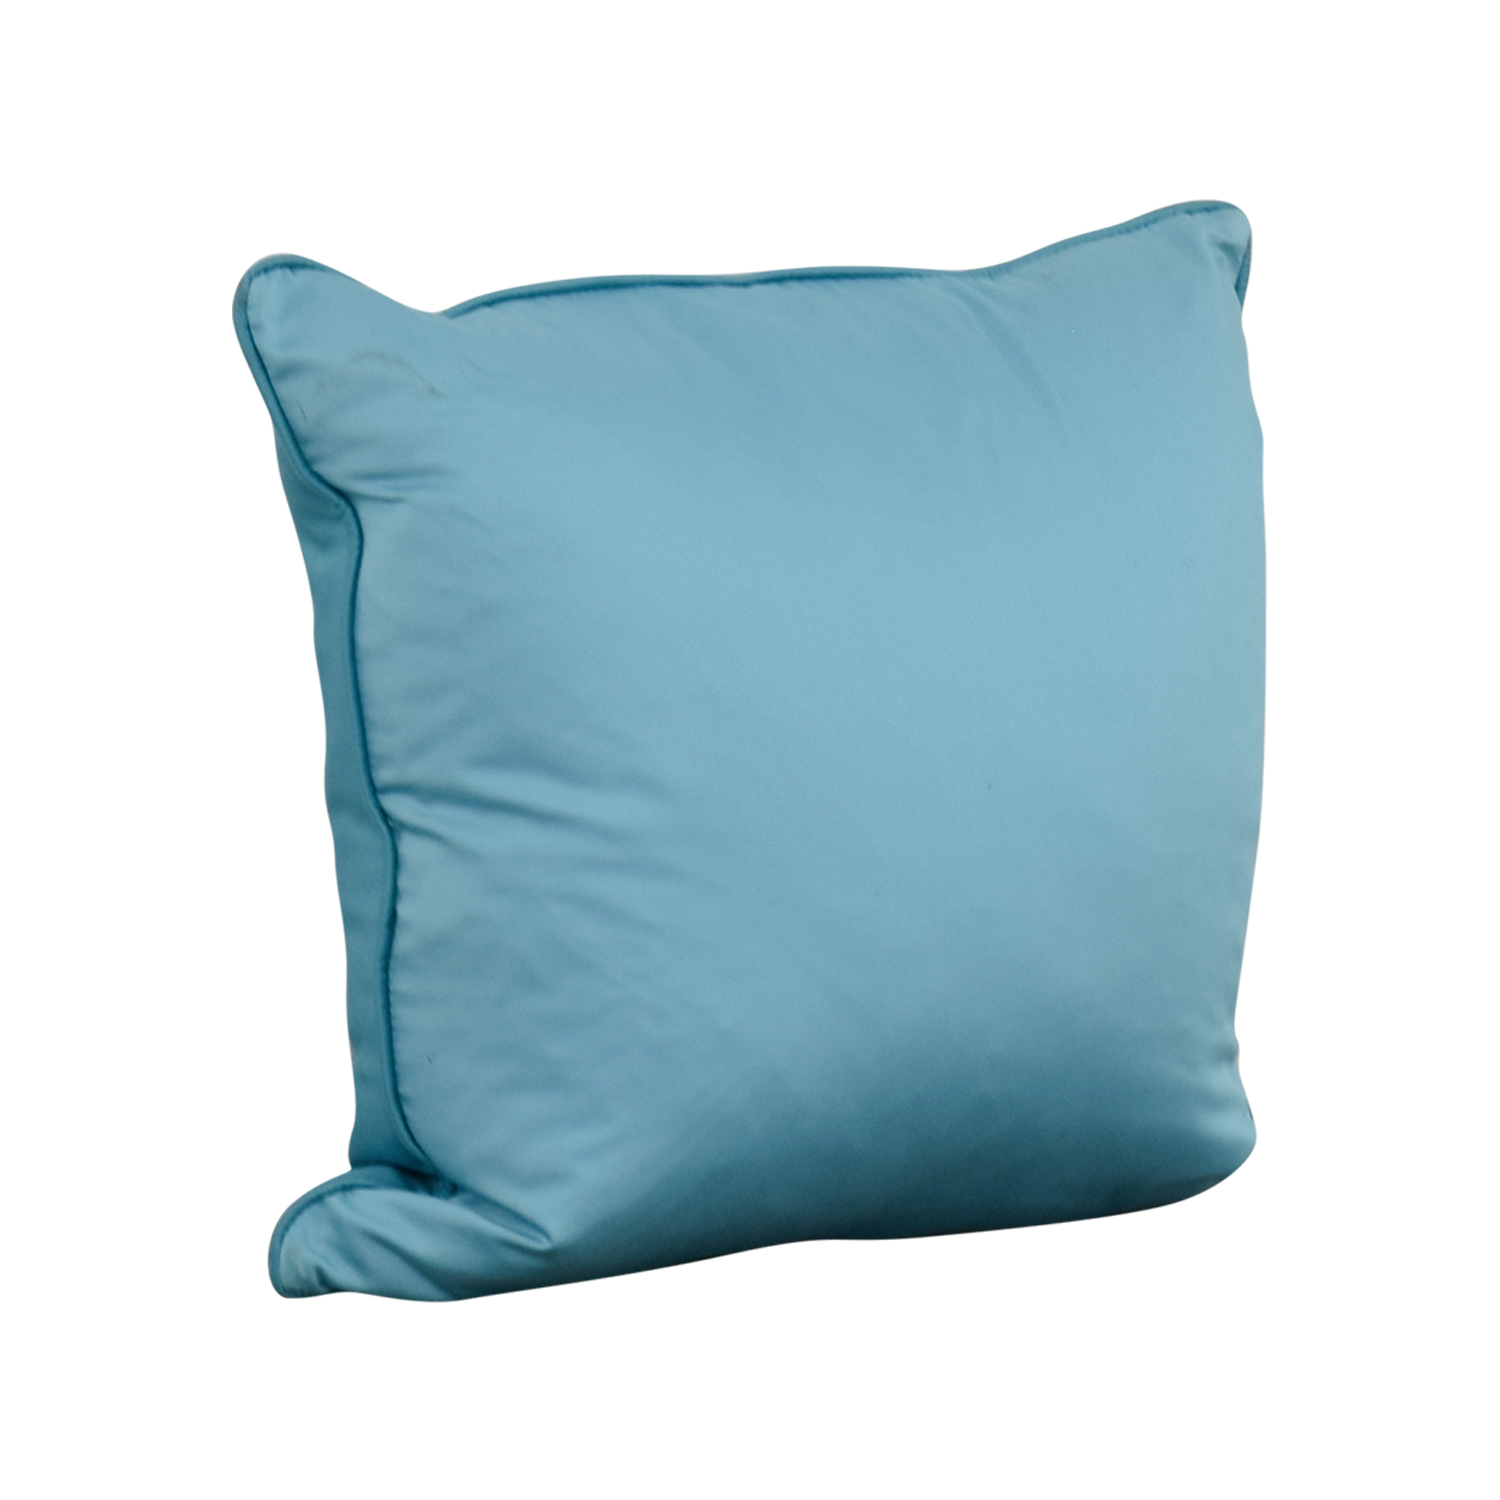 Society Social Teal Pillow sale